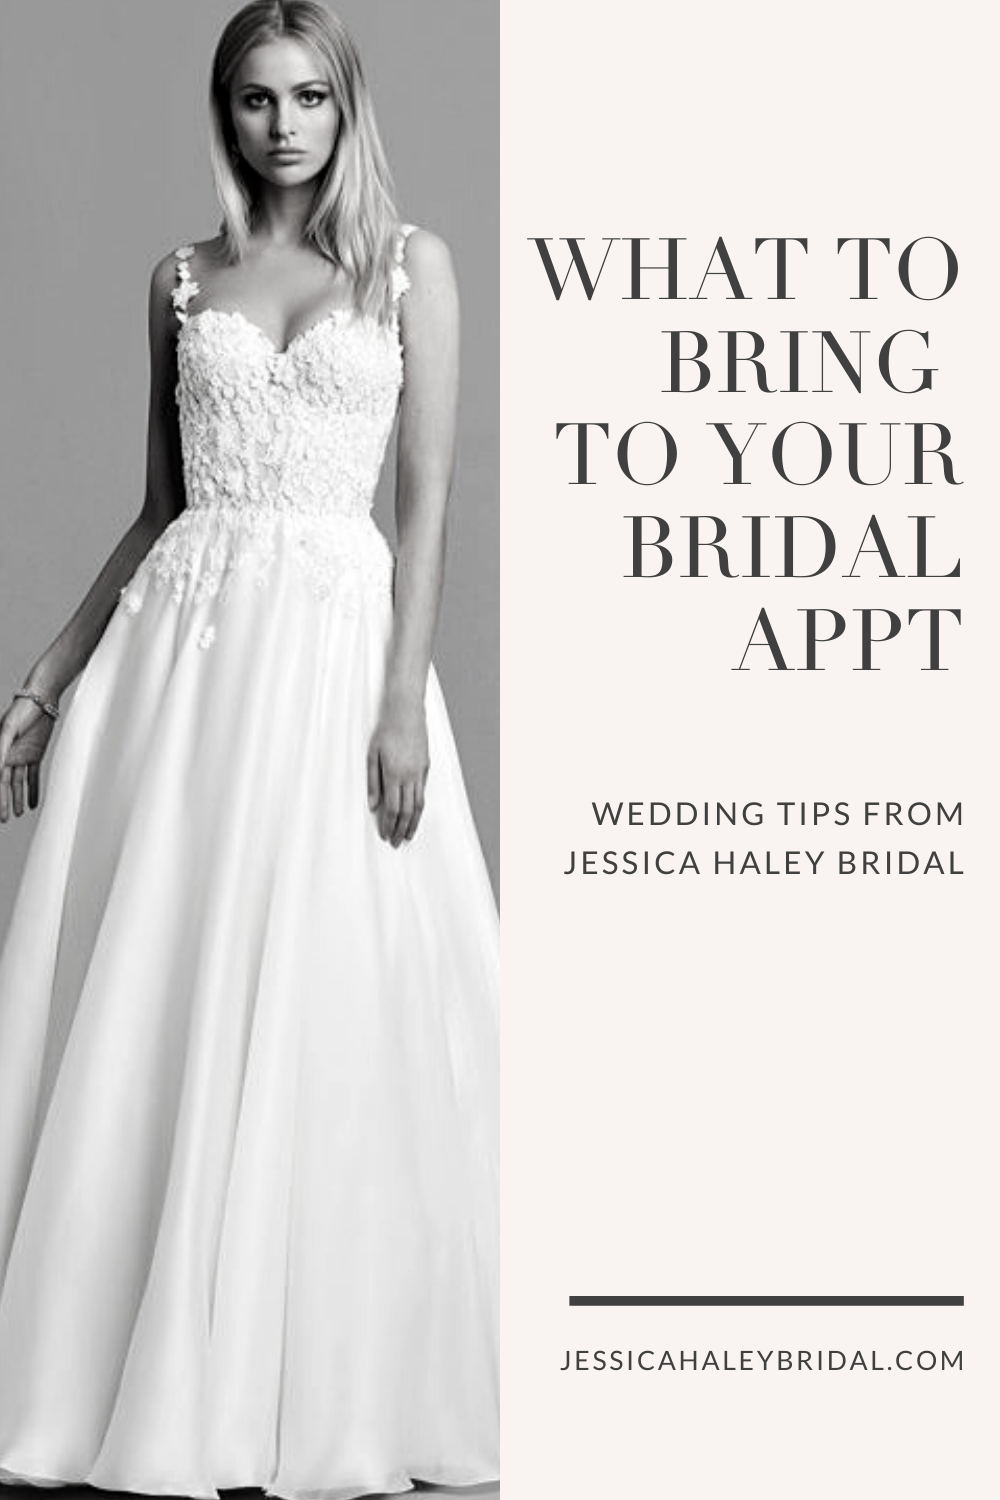 5 Things To Bring To Your Bridal Appointment Jessica Haley Bridal Wedding Dress Types Petite Wedding Dress Wedding Dresses [ 1500 x 1000 Pixel ]